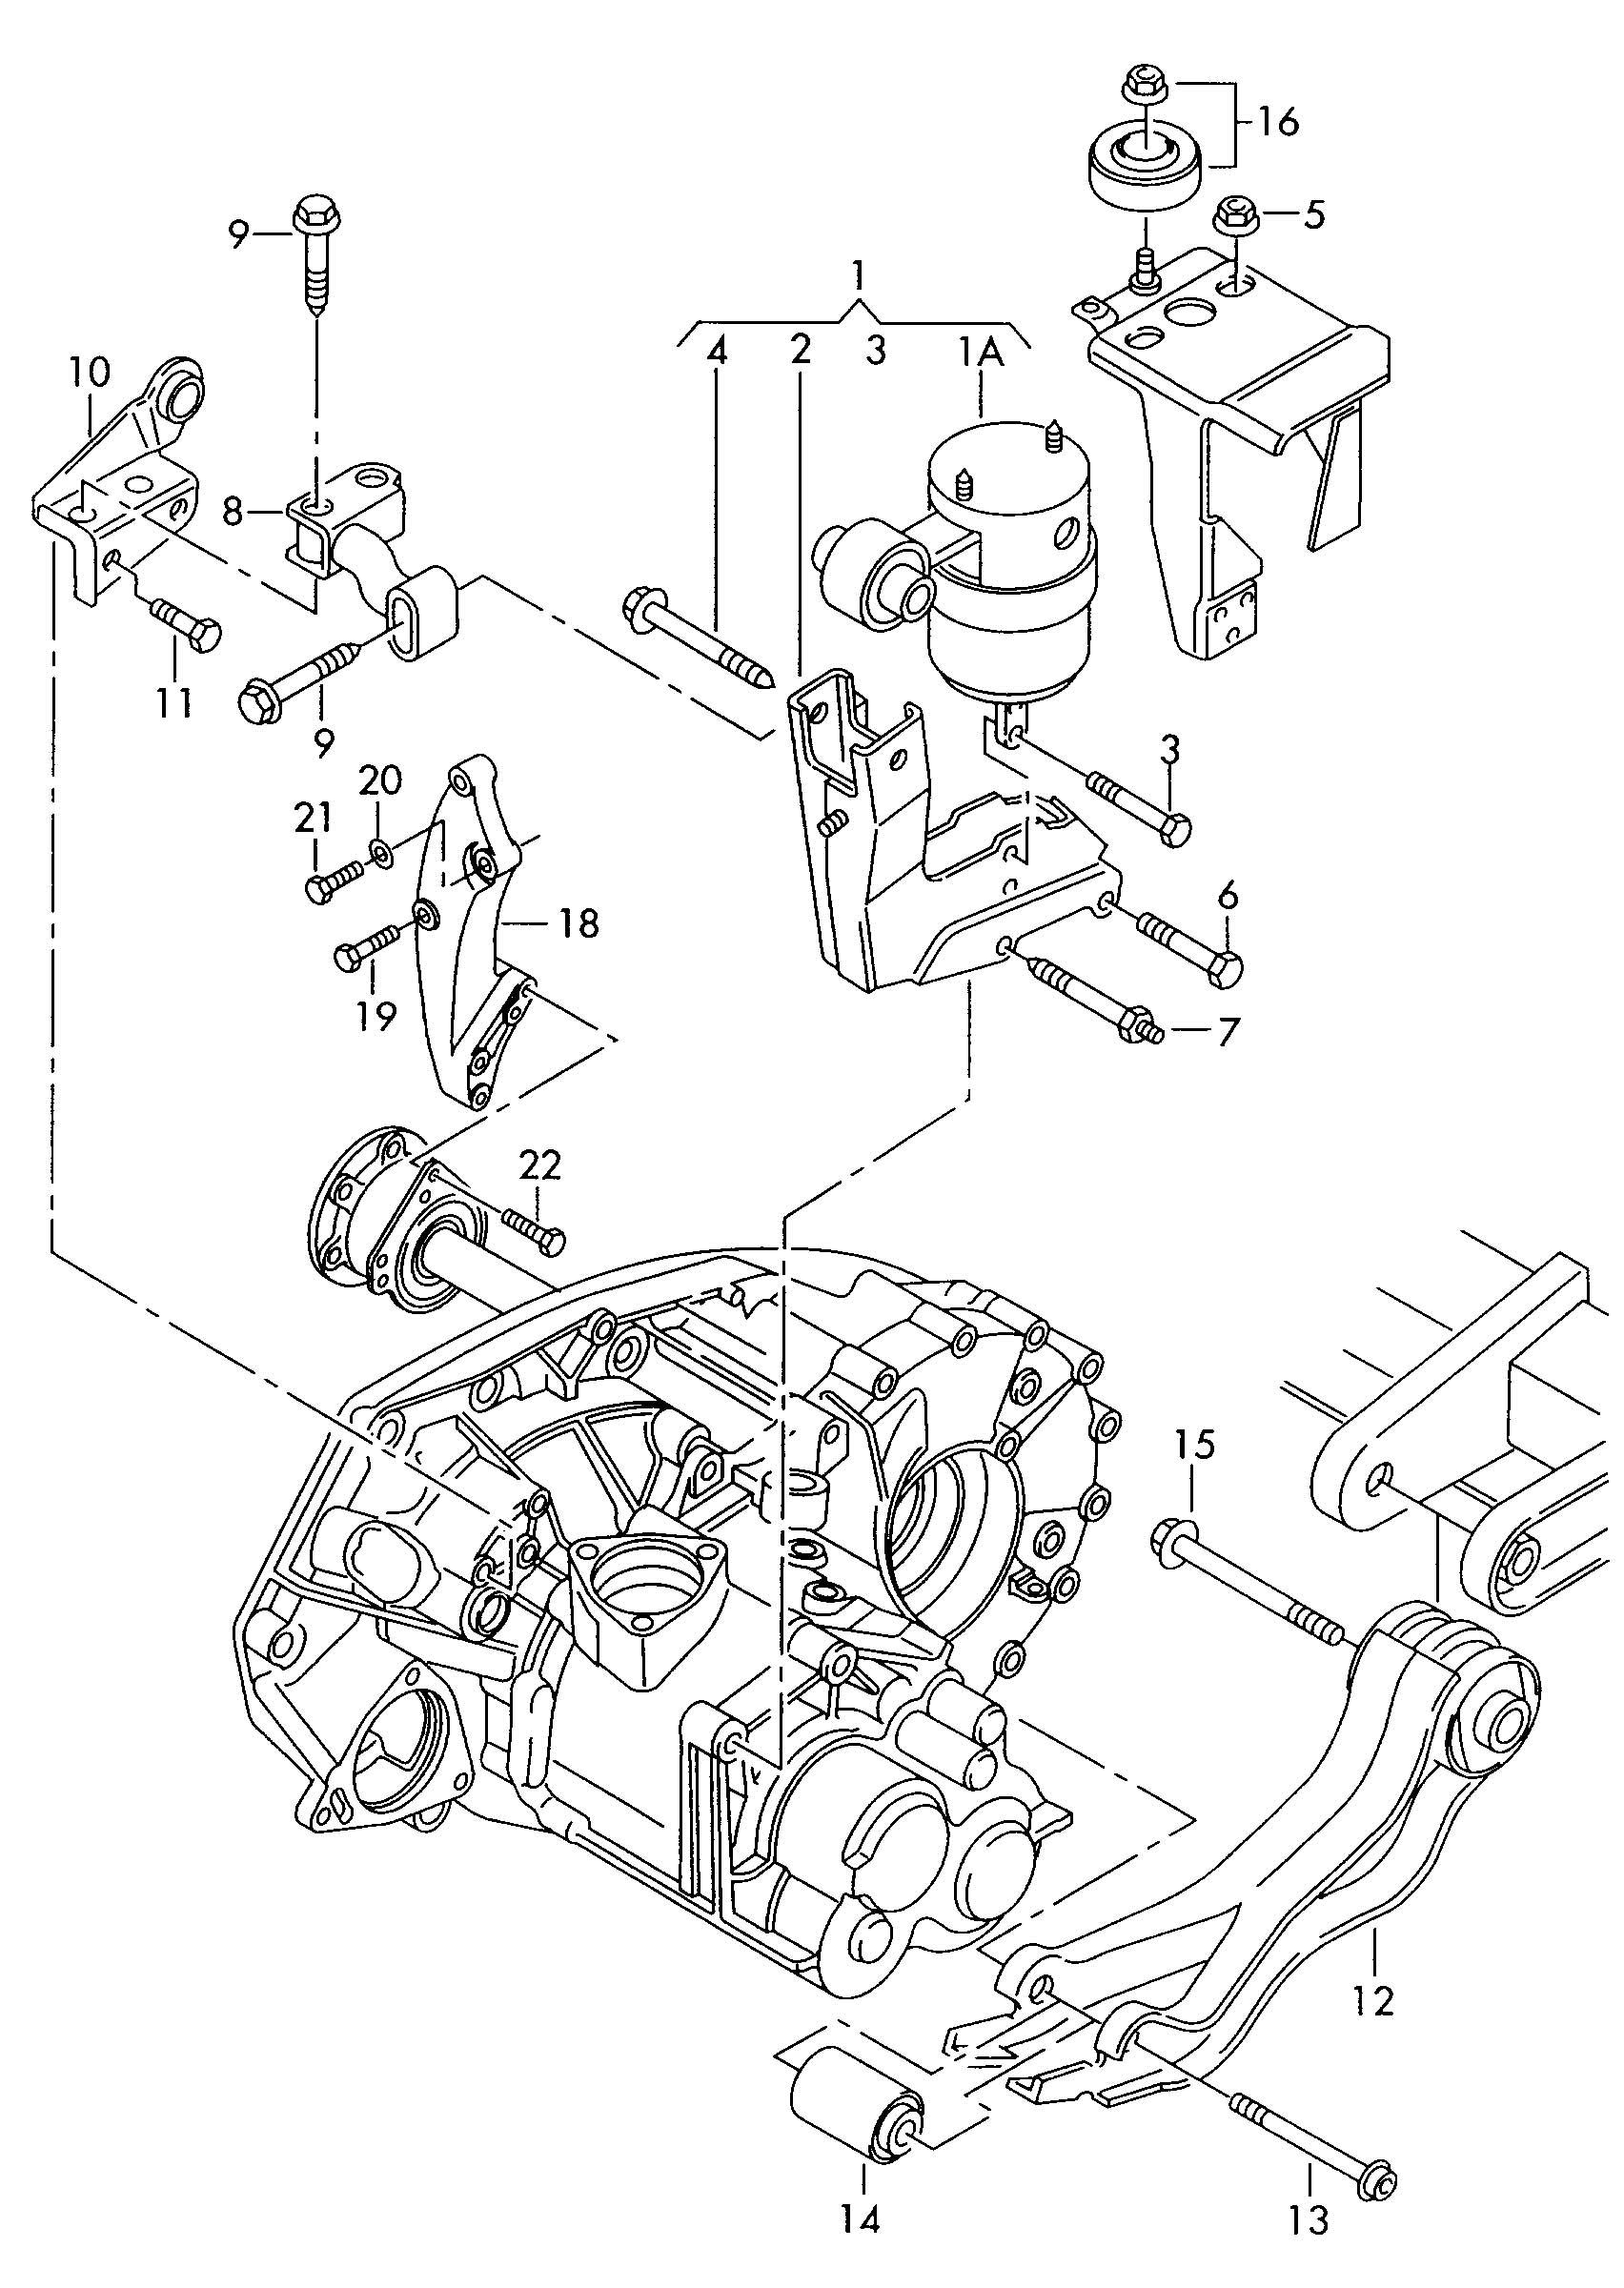 triumph tr6 wiring diagram with Nv3500 Manual Transmission Diagram on Nv3500 Manual Transmission Diagram together with 1972 Triumph T120 Wiring Diagram furthermore Perko Dual Battery Wiring Diagram further Electric Blower Motor Wiring Diagram likewise Wiring Diagrams.